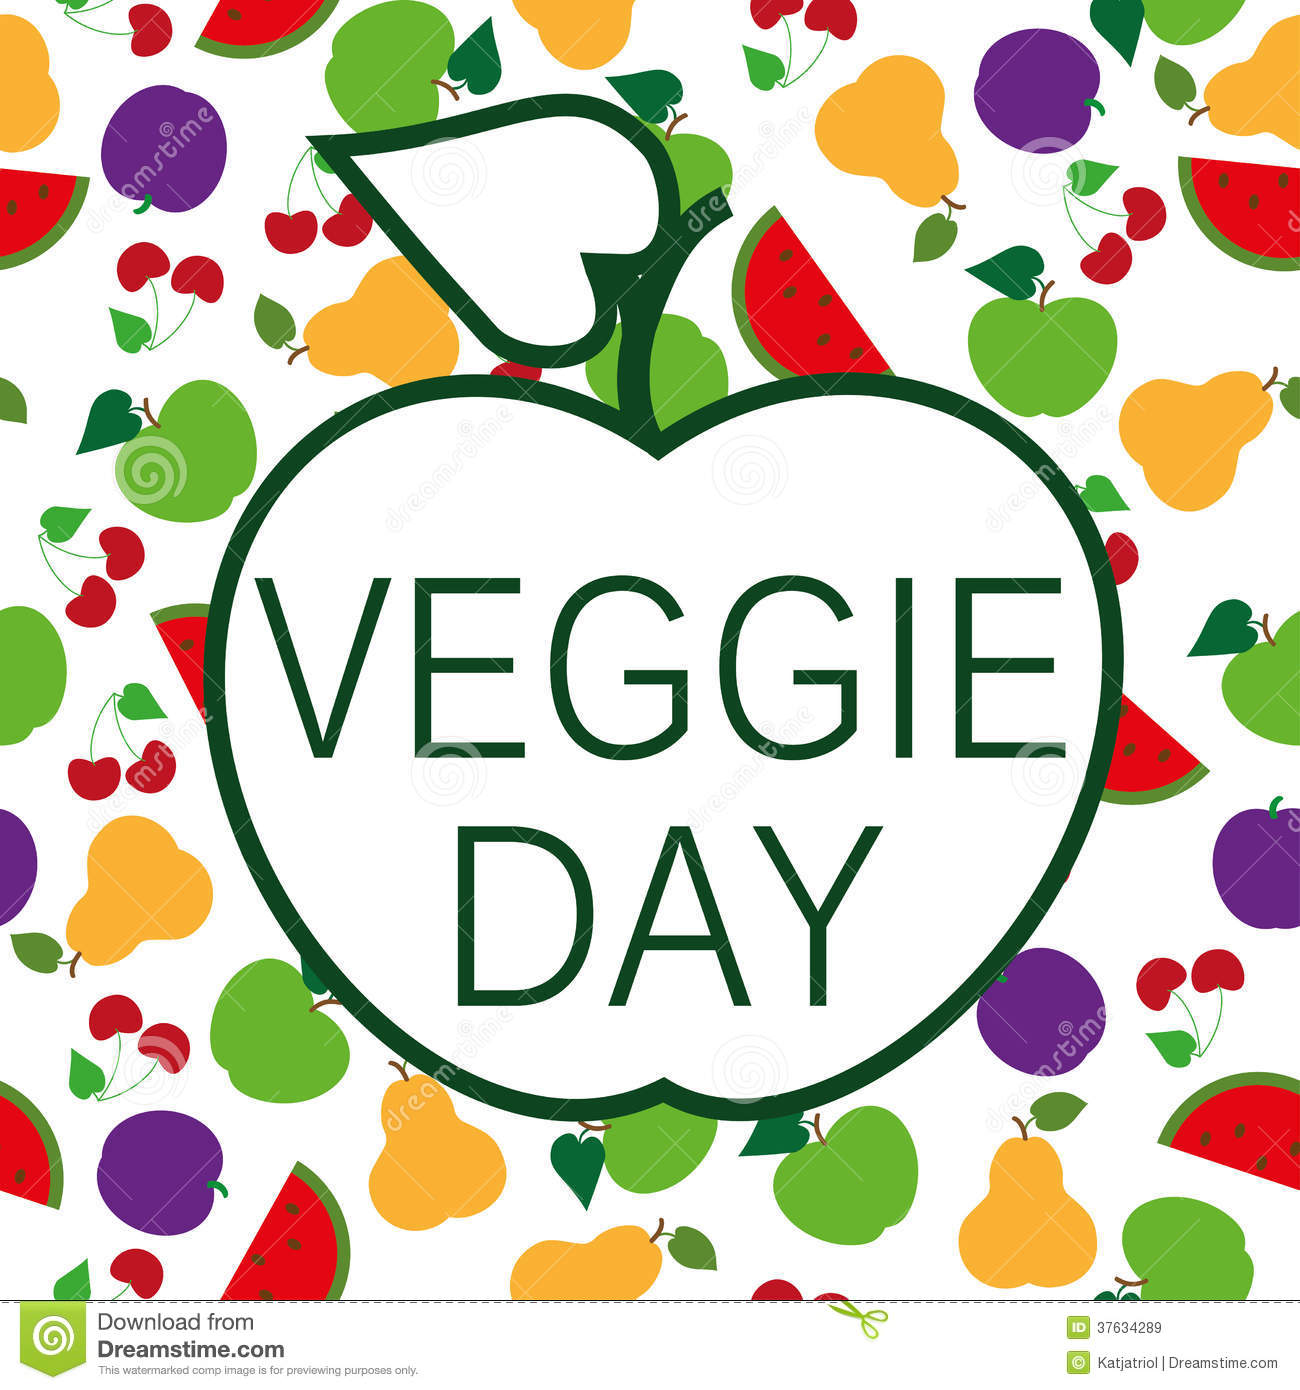 Veggie day text on seamless background of summer fruits.